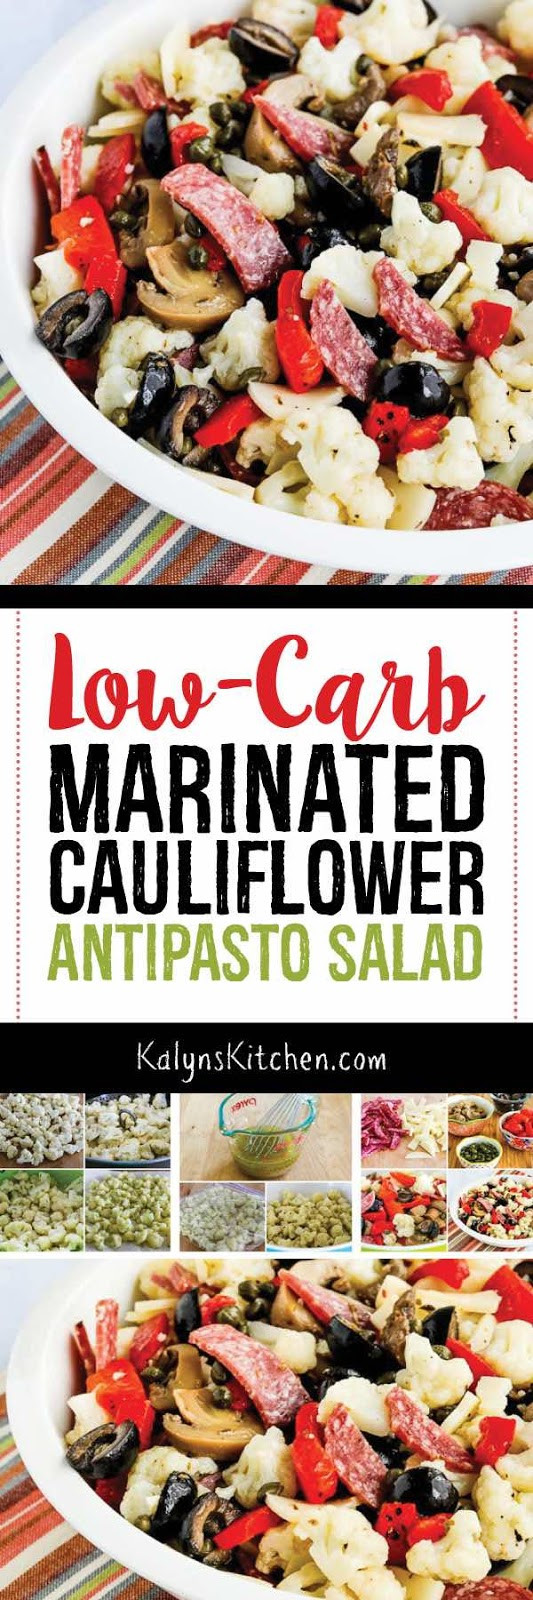 Low Carb Marinades  Low Carb Marinated Cauliflower Antipasto Salad Kalyn s